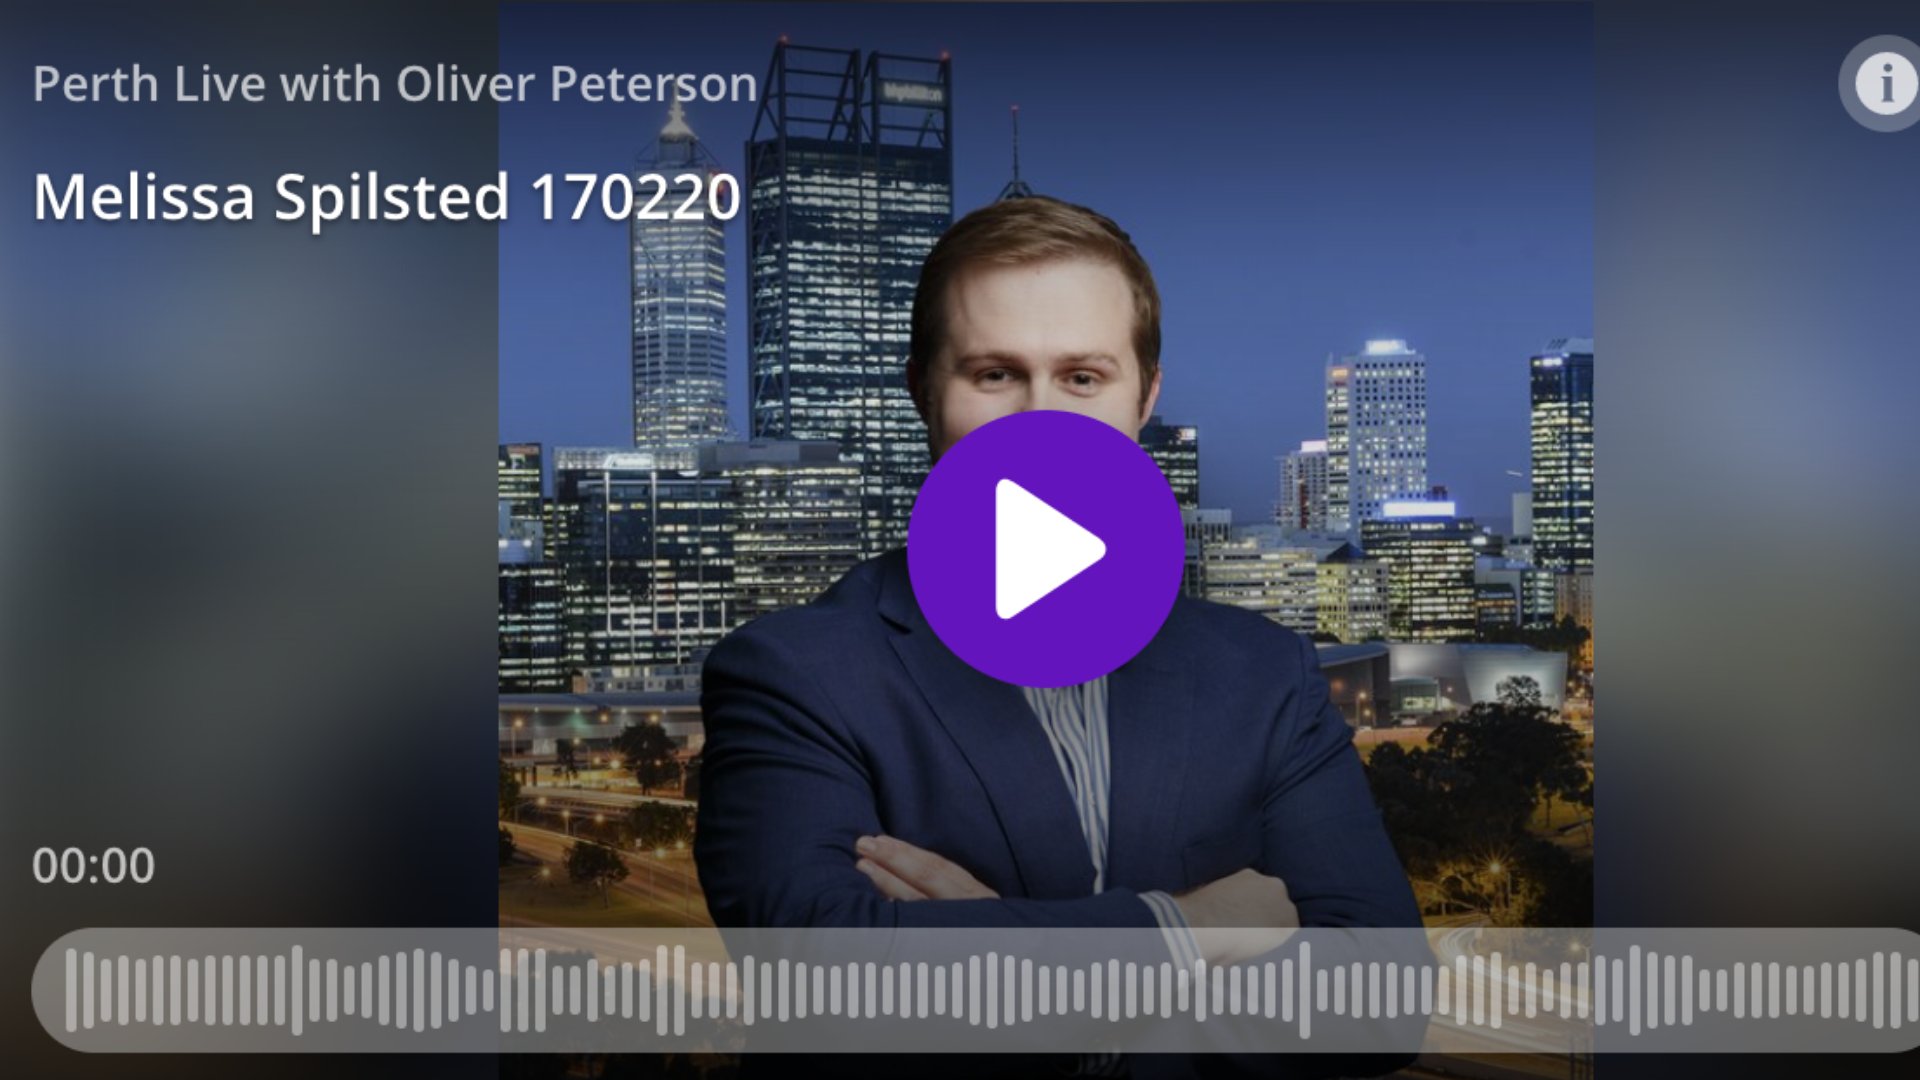 6PR Perth Live with Oliver Peterson (interview with Melissa Spilsted - Hypnobirthing Australia™)